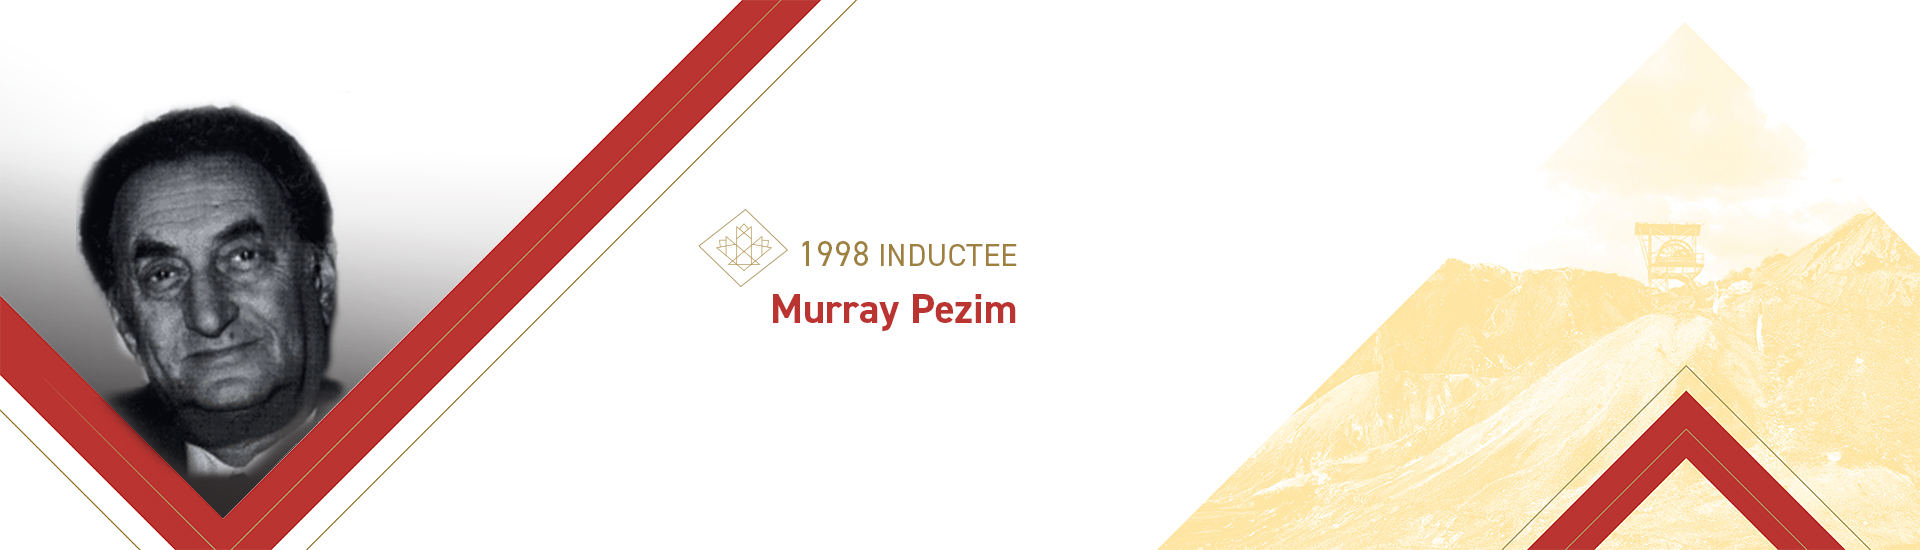 Murray Pezim (1920 – 1998)